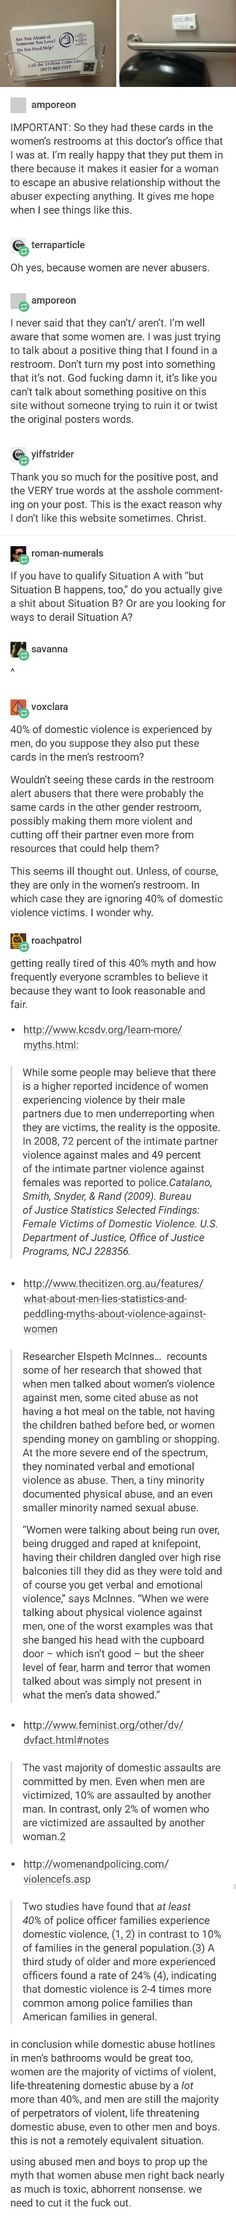 That?s only because we only count physical abuse as abuse. It?s so much more likely for women to be emotional abusers in a relationship than physical